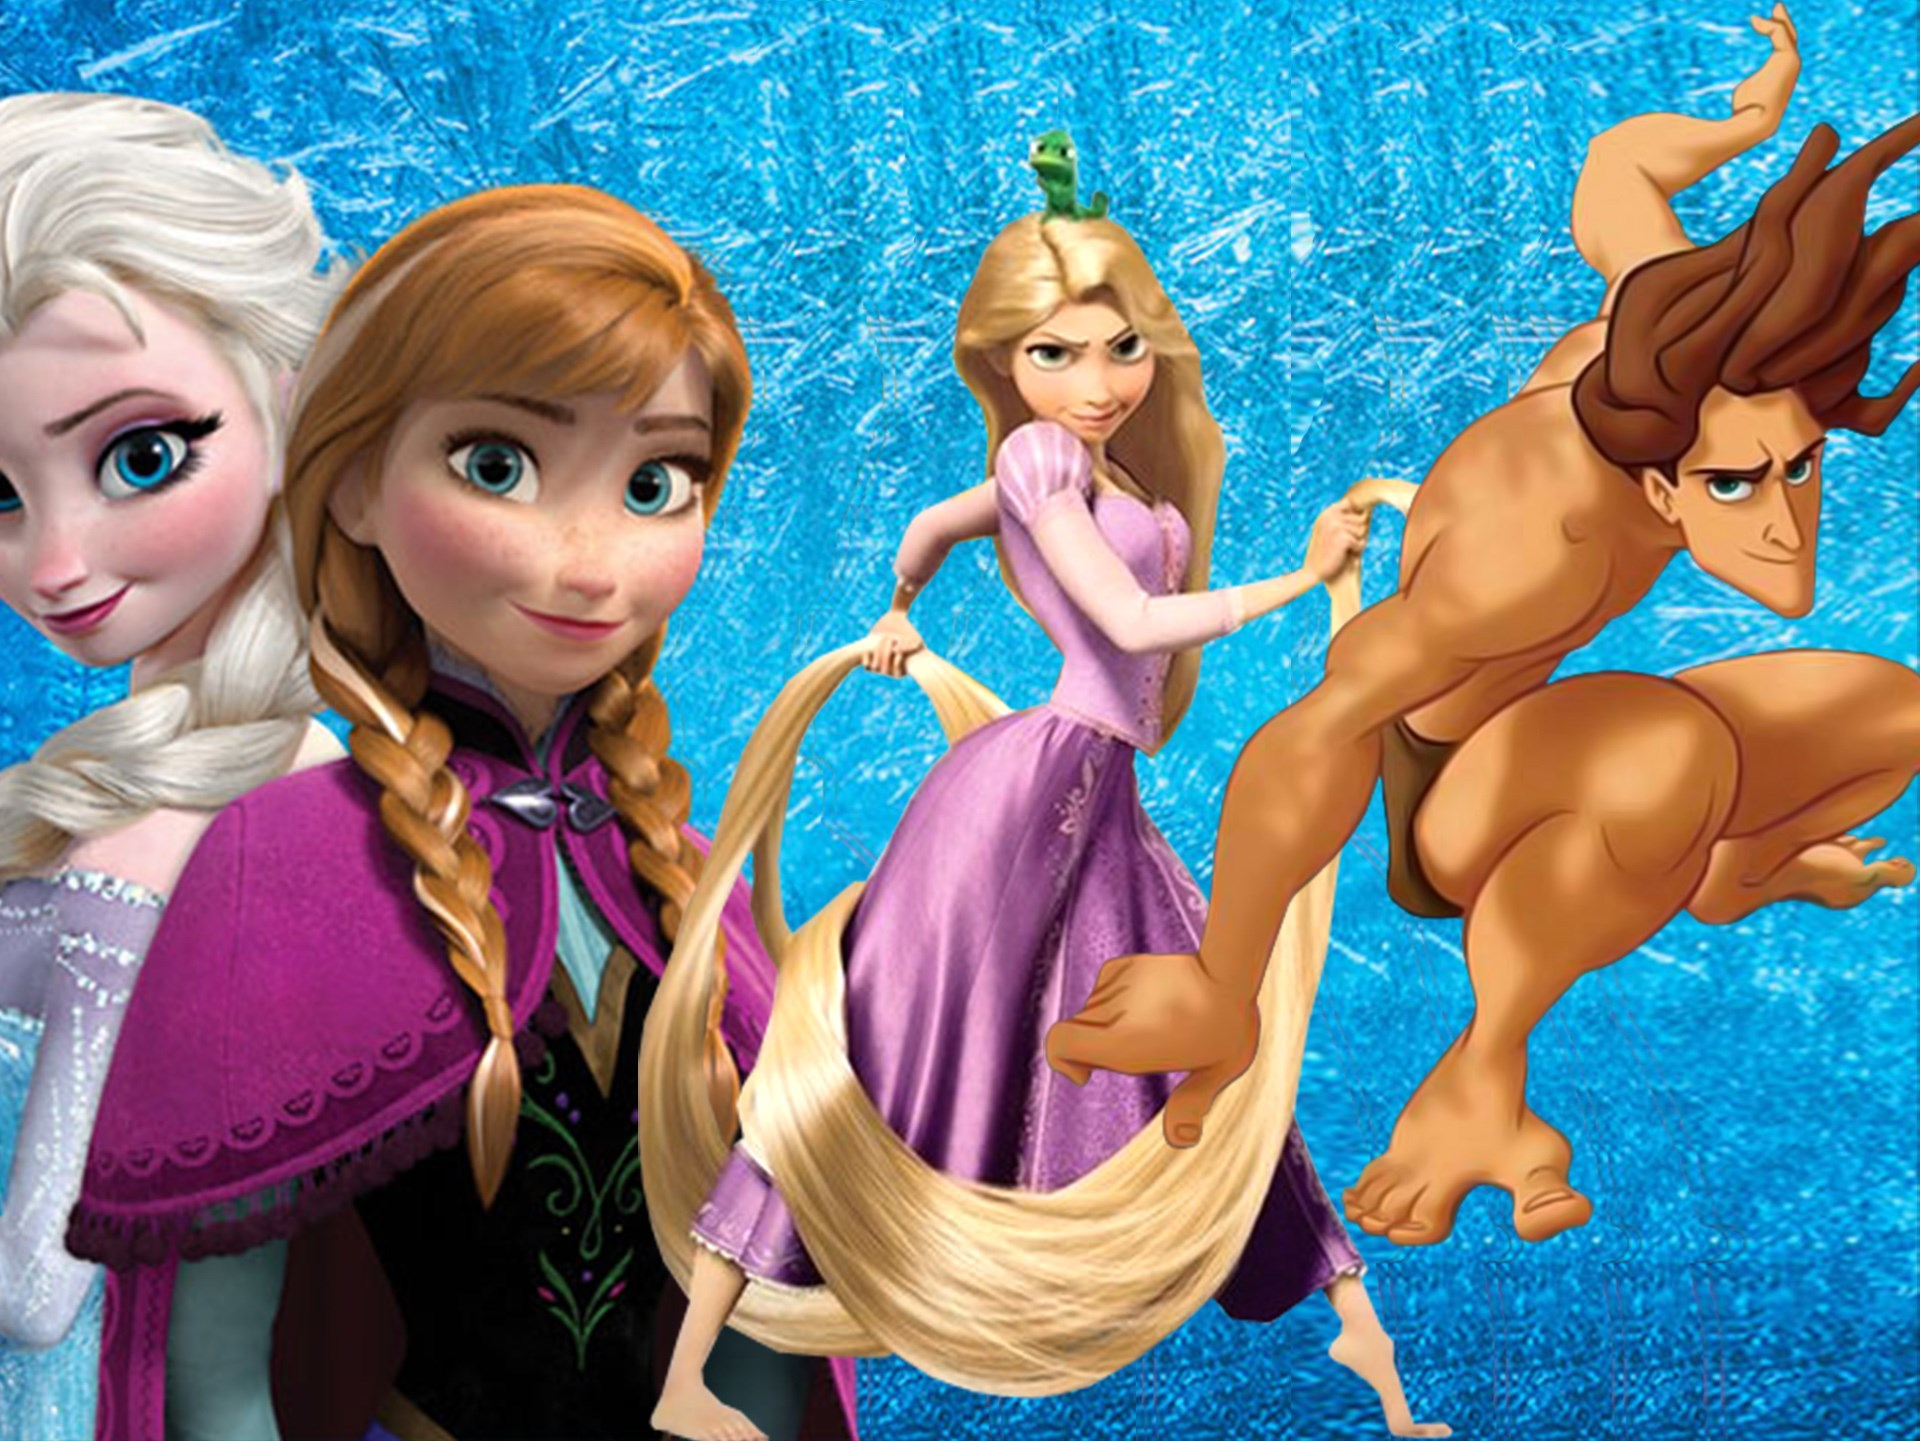 ***Frozen, Rapunzel* and *Tarzan* theory** Here's the deal: At the beginning of *Frozen*, we see Anna and Elsa's parents leave on a ship for a wedding. This was actually *Tangled's* Flynn Ryder and Rapunzel's wedding. At the time, it's believed that Anna and Elsa's mum was pregnant with their little brother... TARZAN. It's even been confirmed.